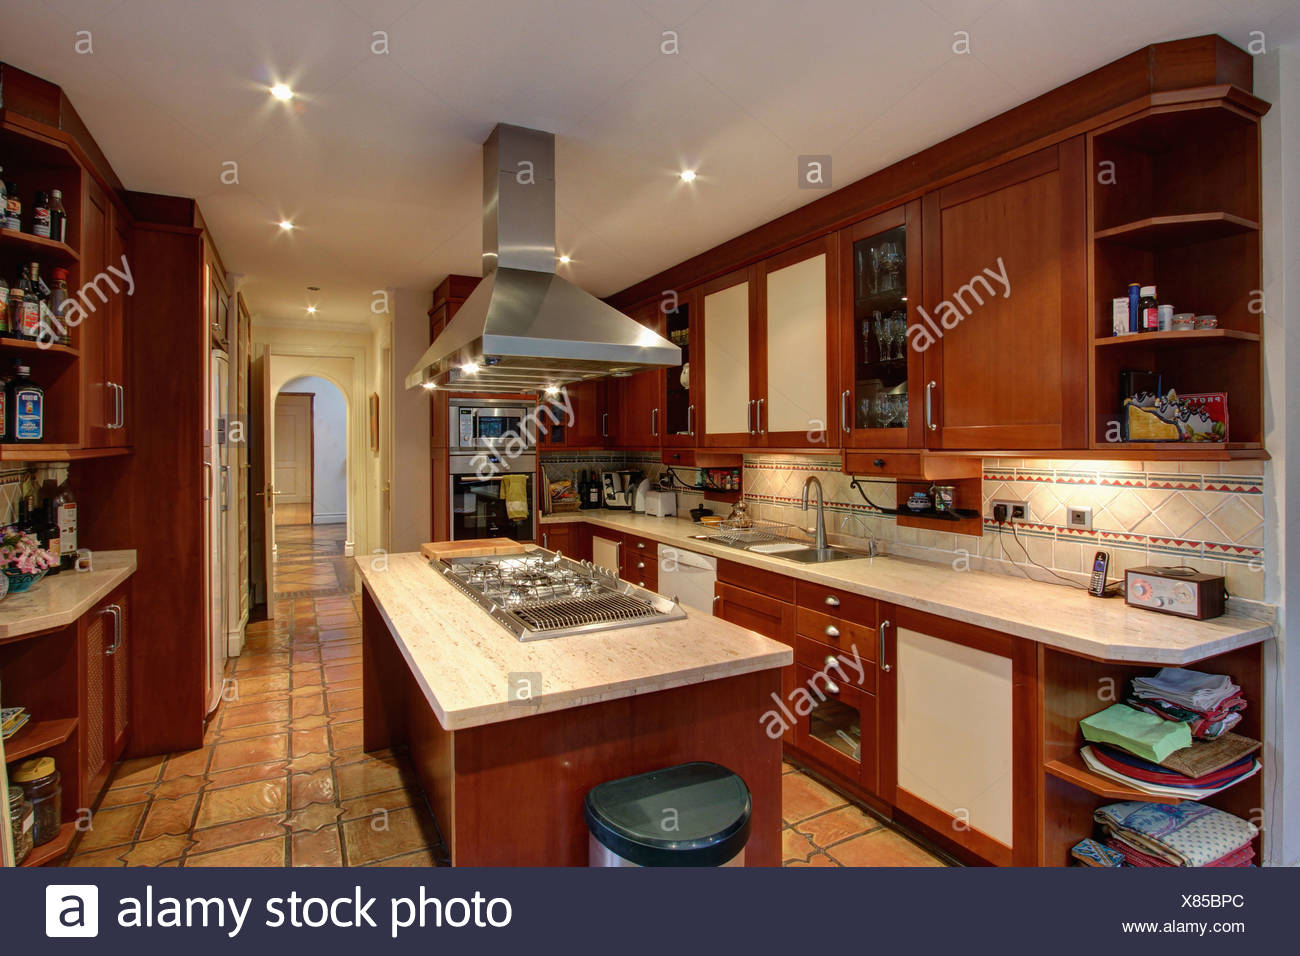 Unit Kitchen Kitchens Domestic Stockfotos & Unit Kitchen Kitchens ...